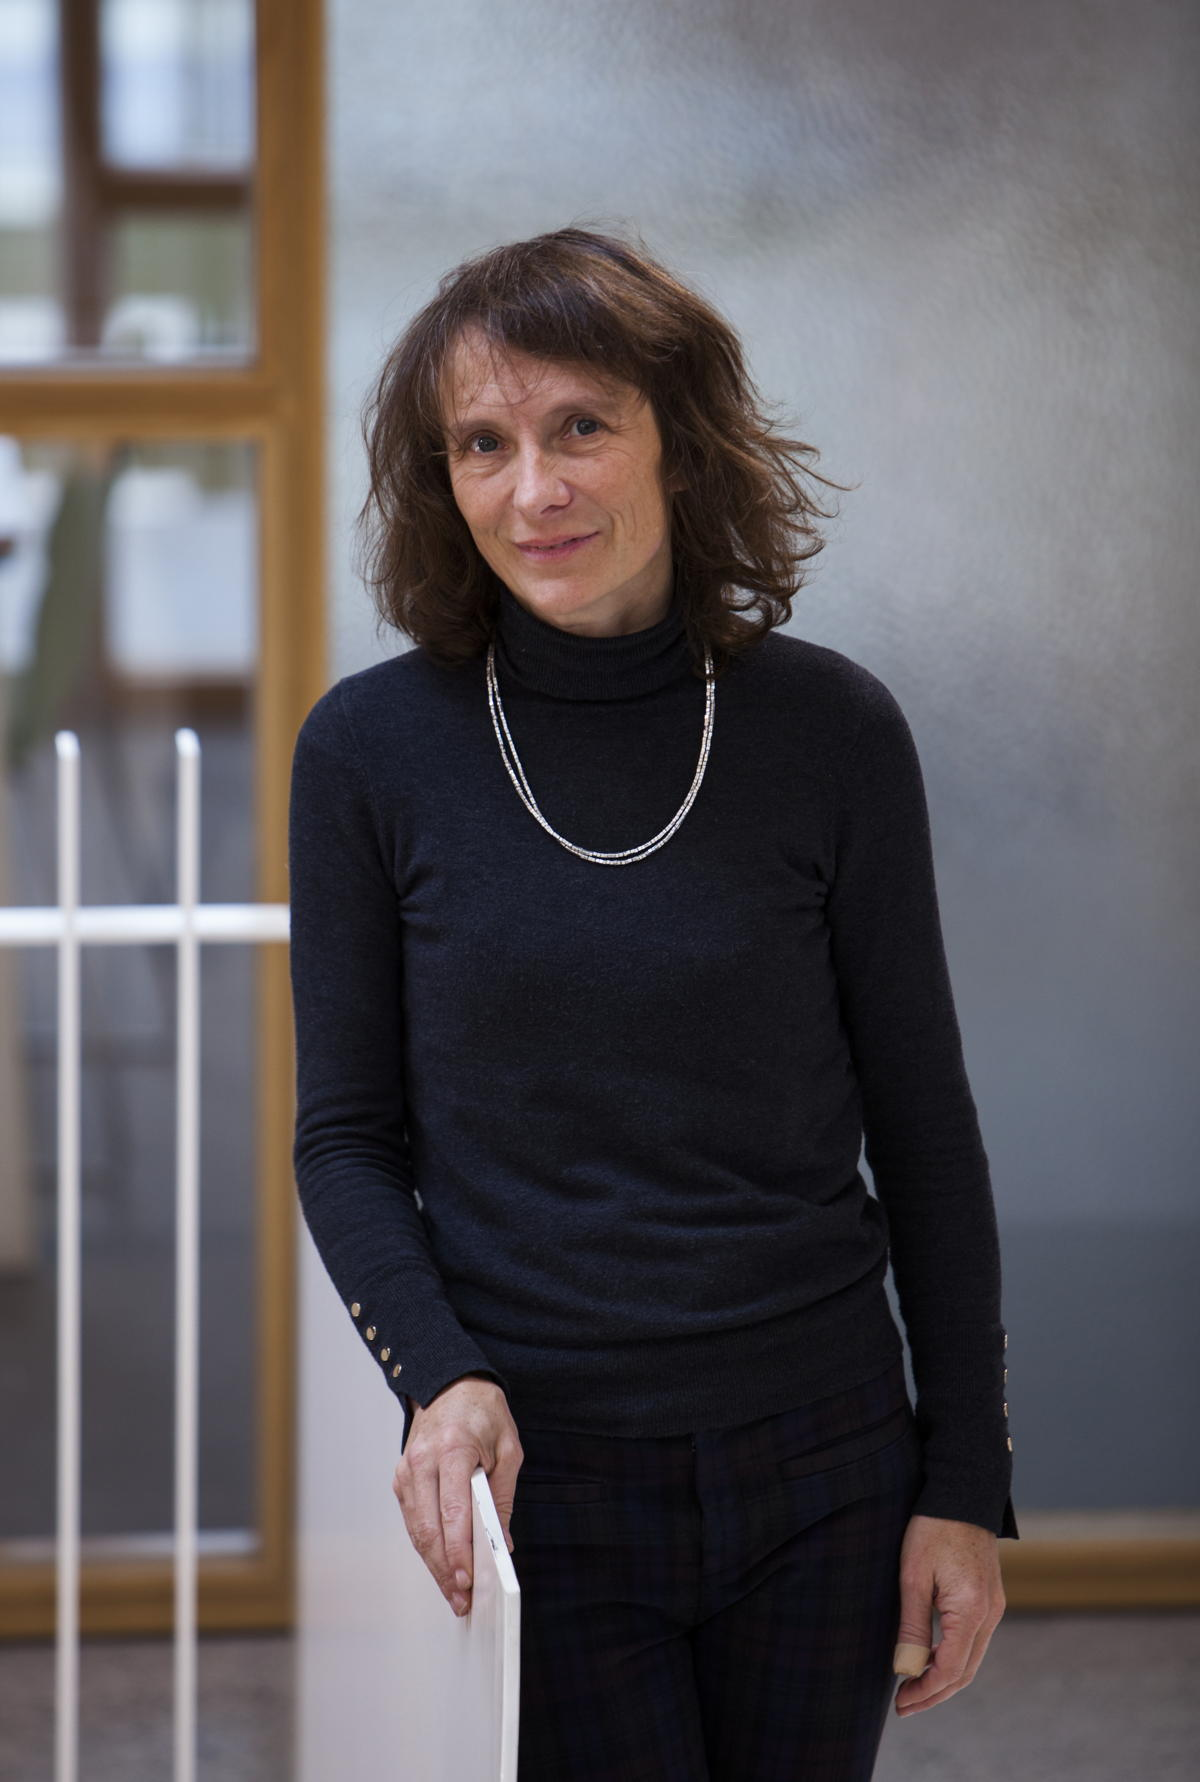 Prof. Silvia Lenaerts, Vice-Rector for Innovation and Valorisation UAntwerp